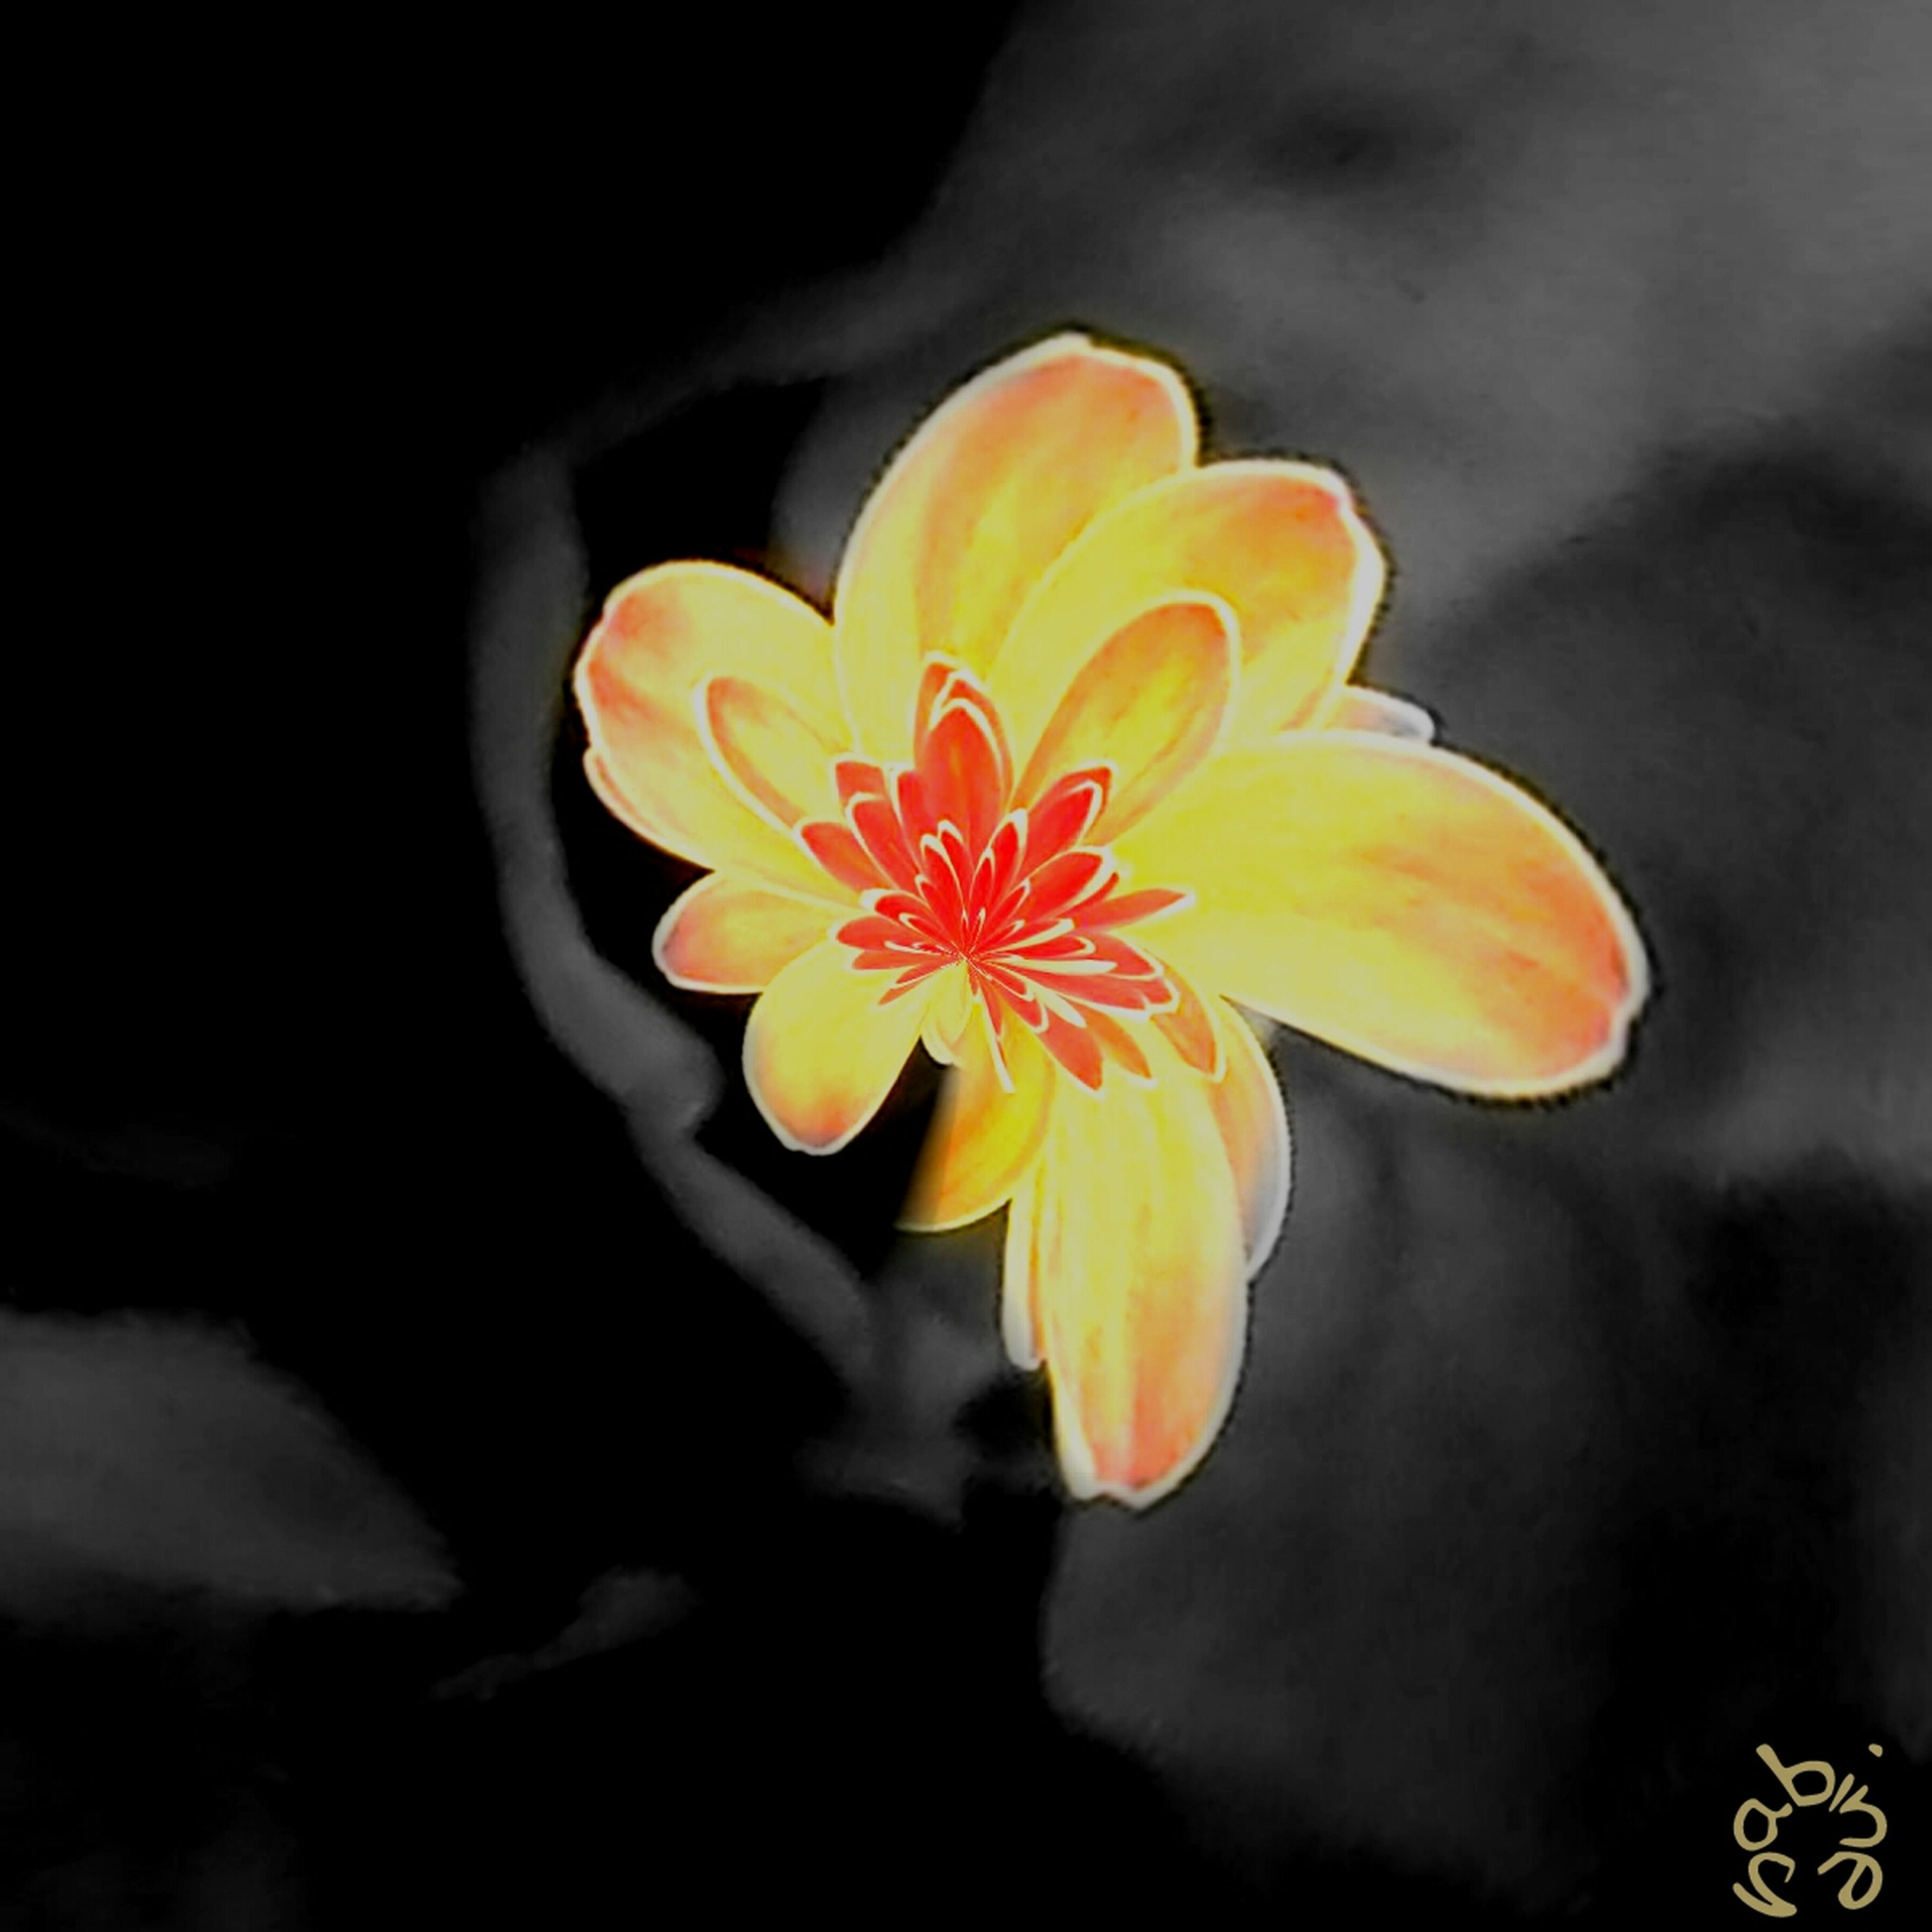 flower, petal, flower head, fragility, freshness, yellow, beauty in nature, close-up, single flower, blooming, growth, nature, pollen, in bloom, plant, stamen, blossom, studio shot, focus on foreground, orange color